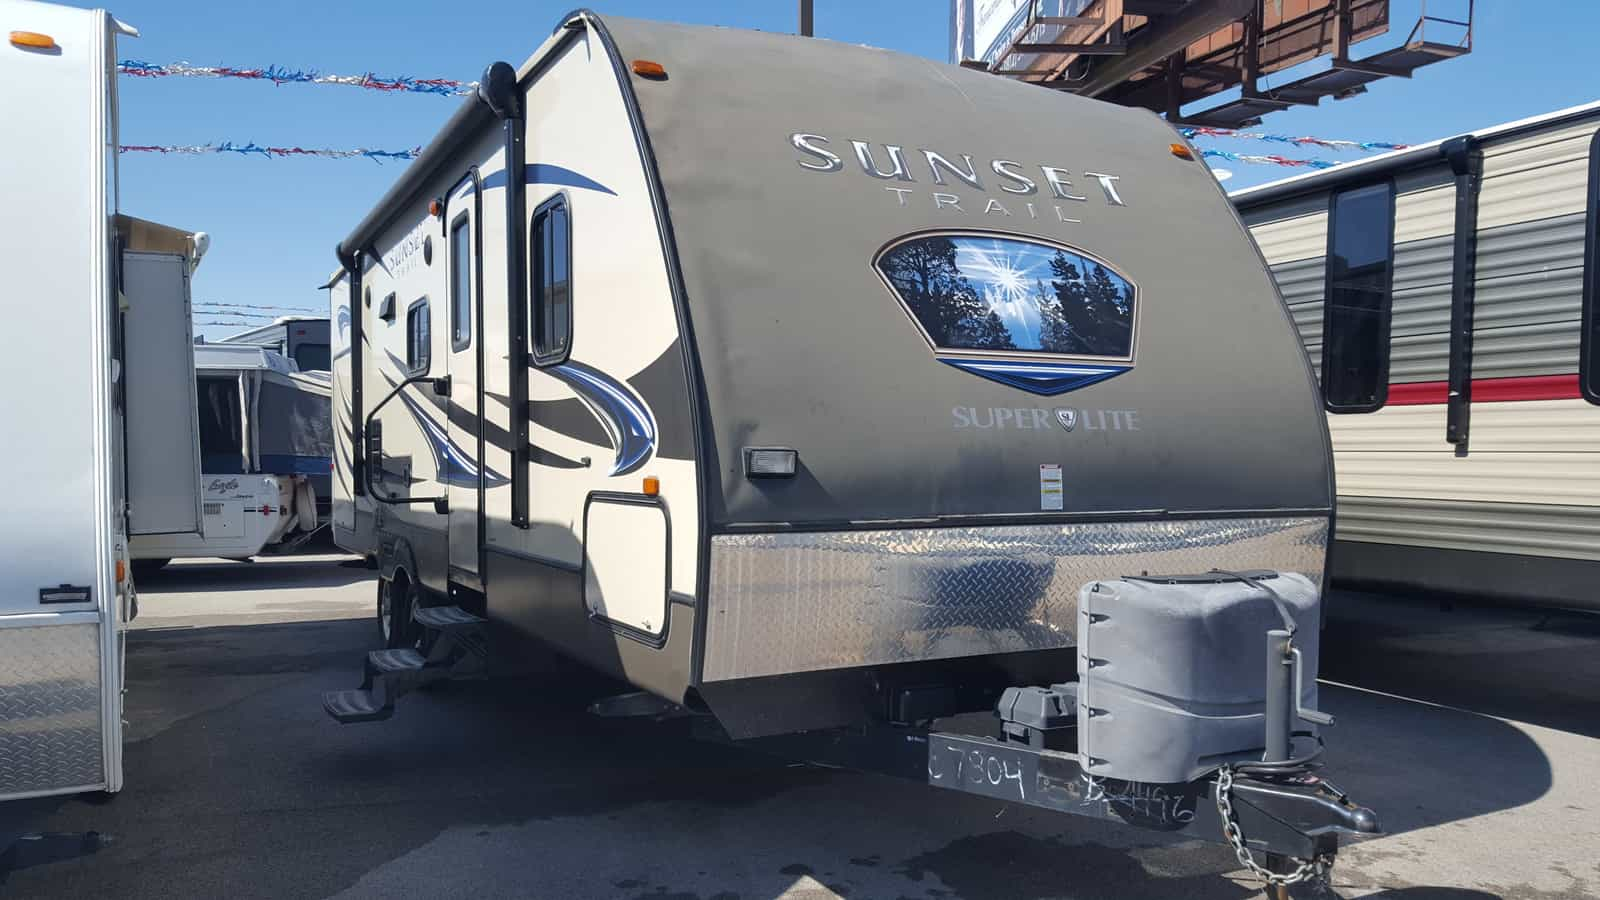 USED 2014 Crossroads SUNSET TRAIL 250RB - American RV